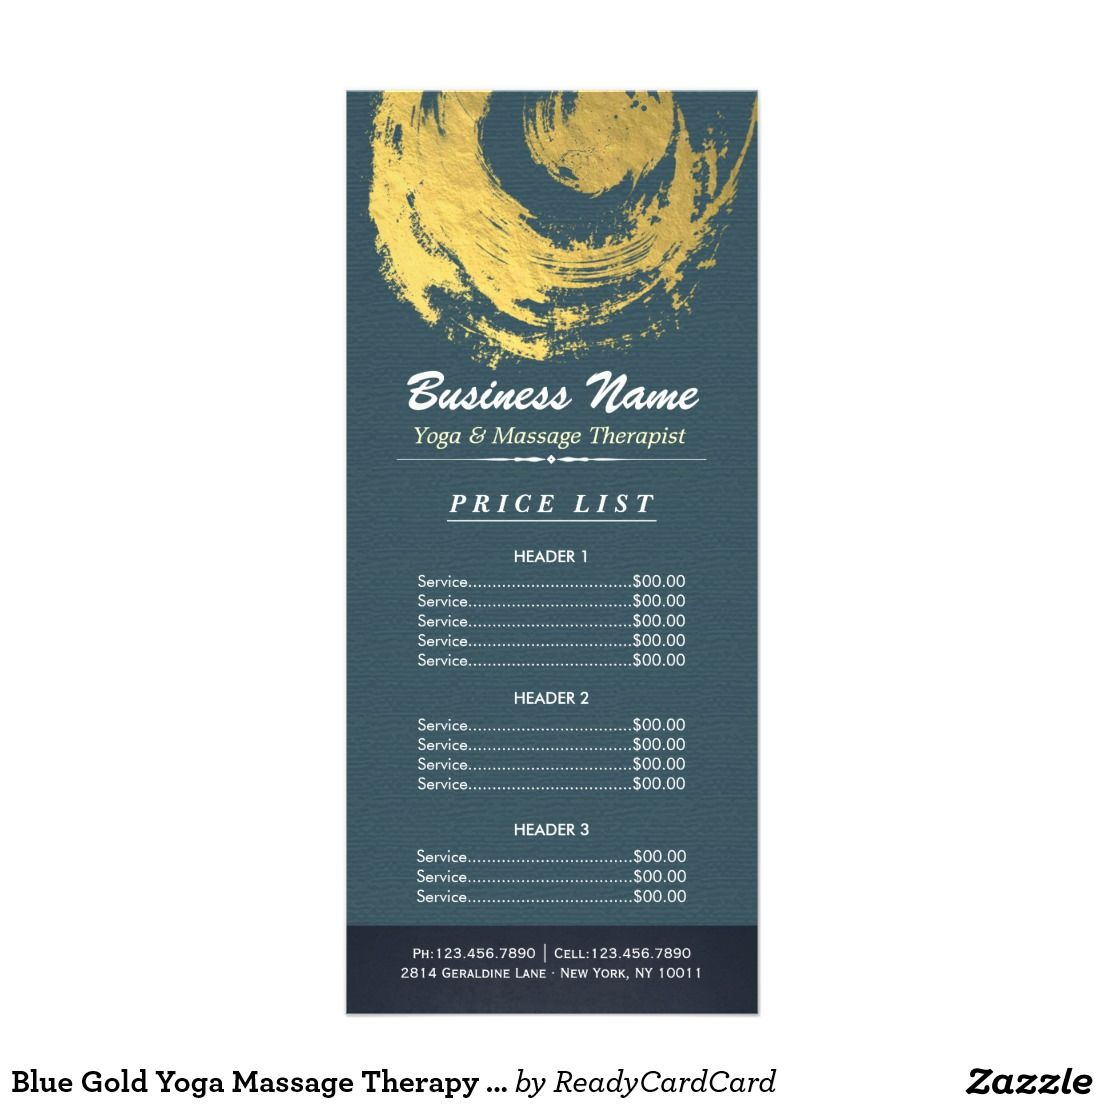 Blue gold yoga massage therapy zen sign price list rack card blue gold yoga massage therapy zen sign price list rack card magicingreecefo Image collections